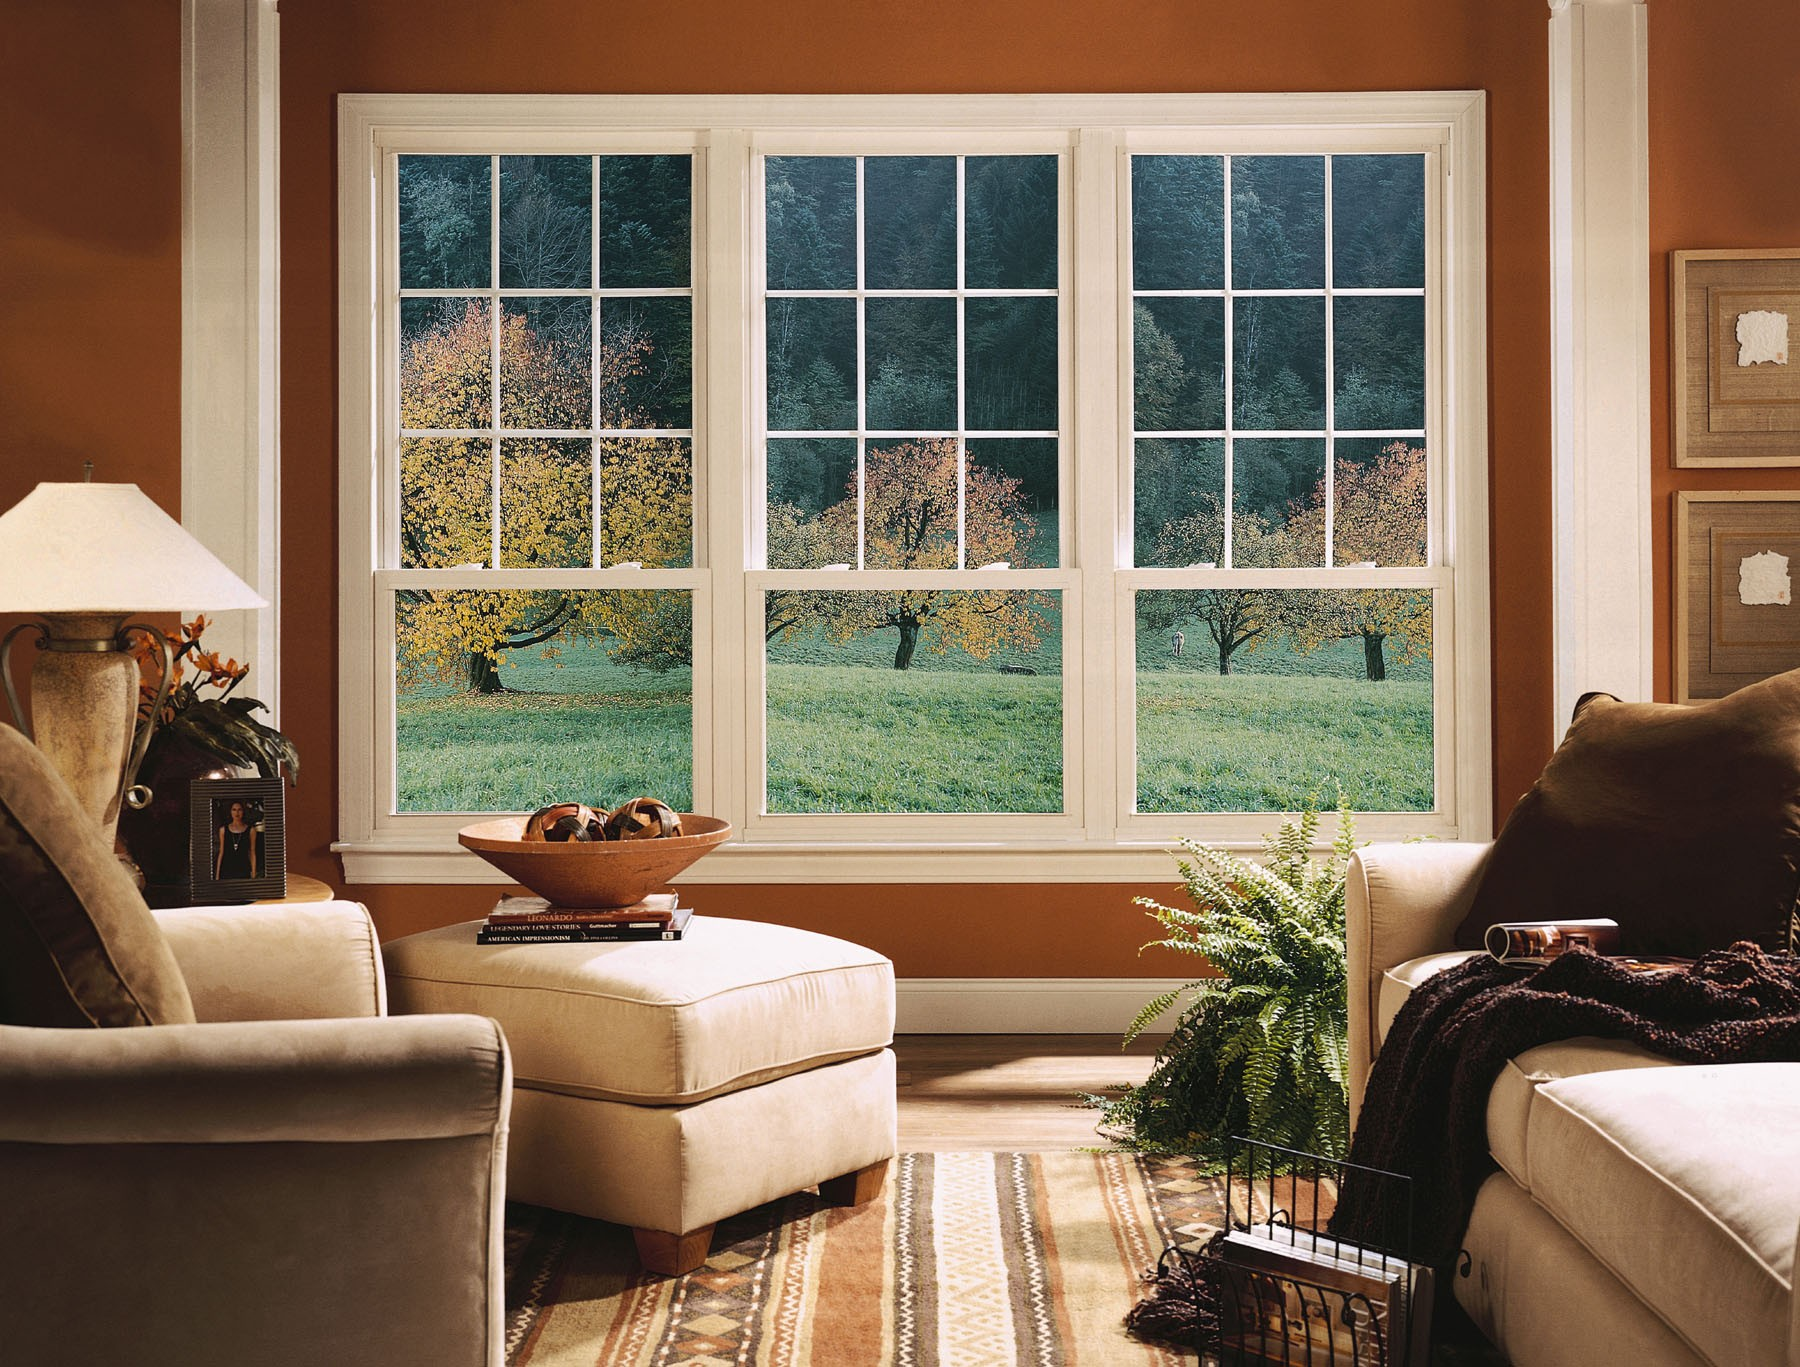 25 fantastic window design ideas for your home